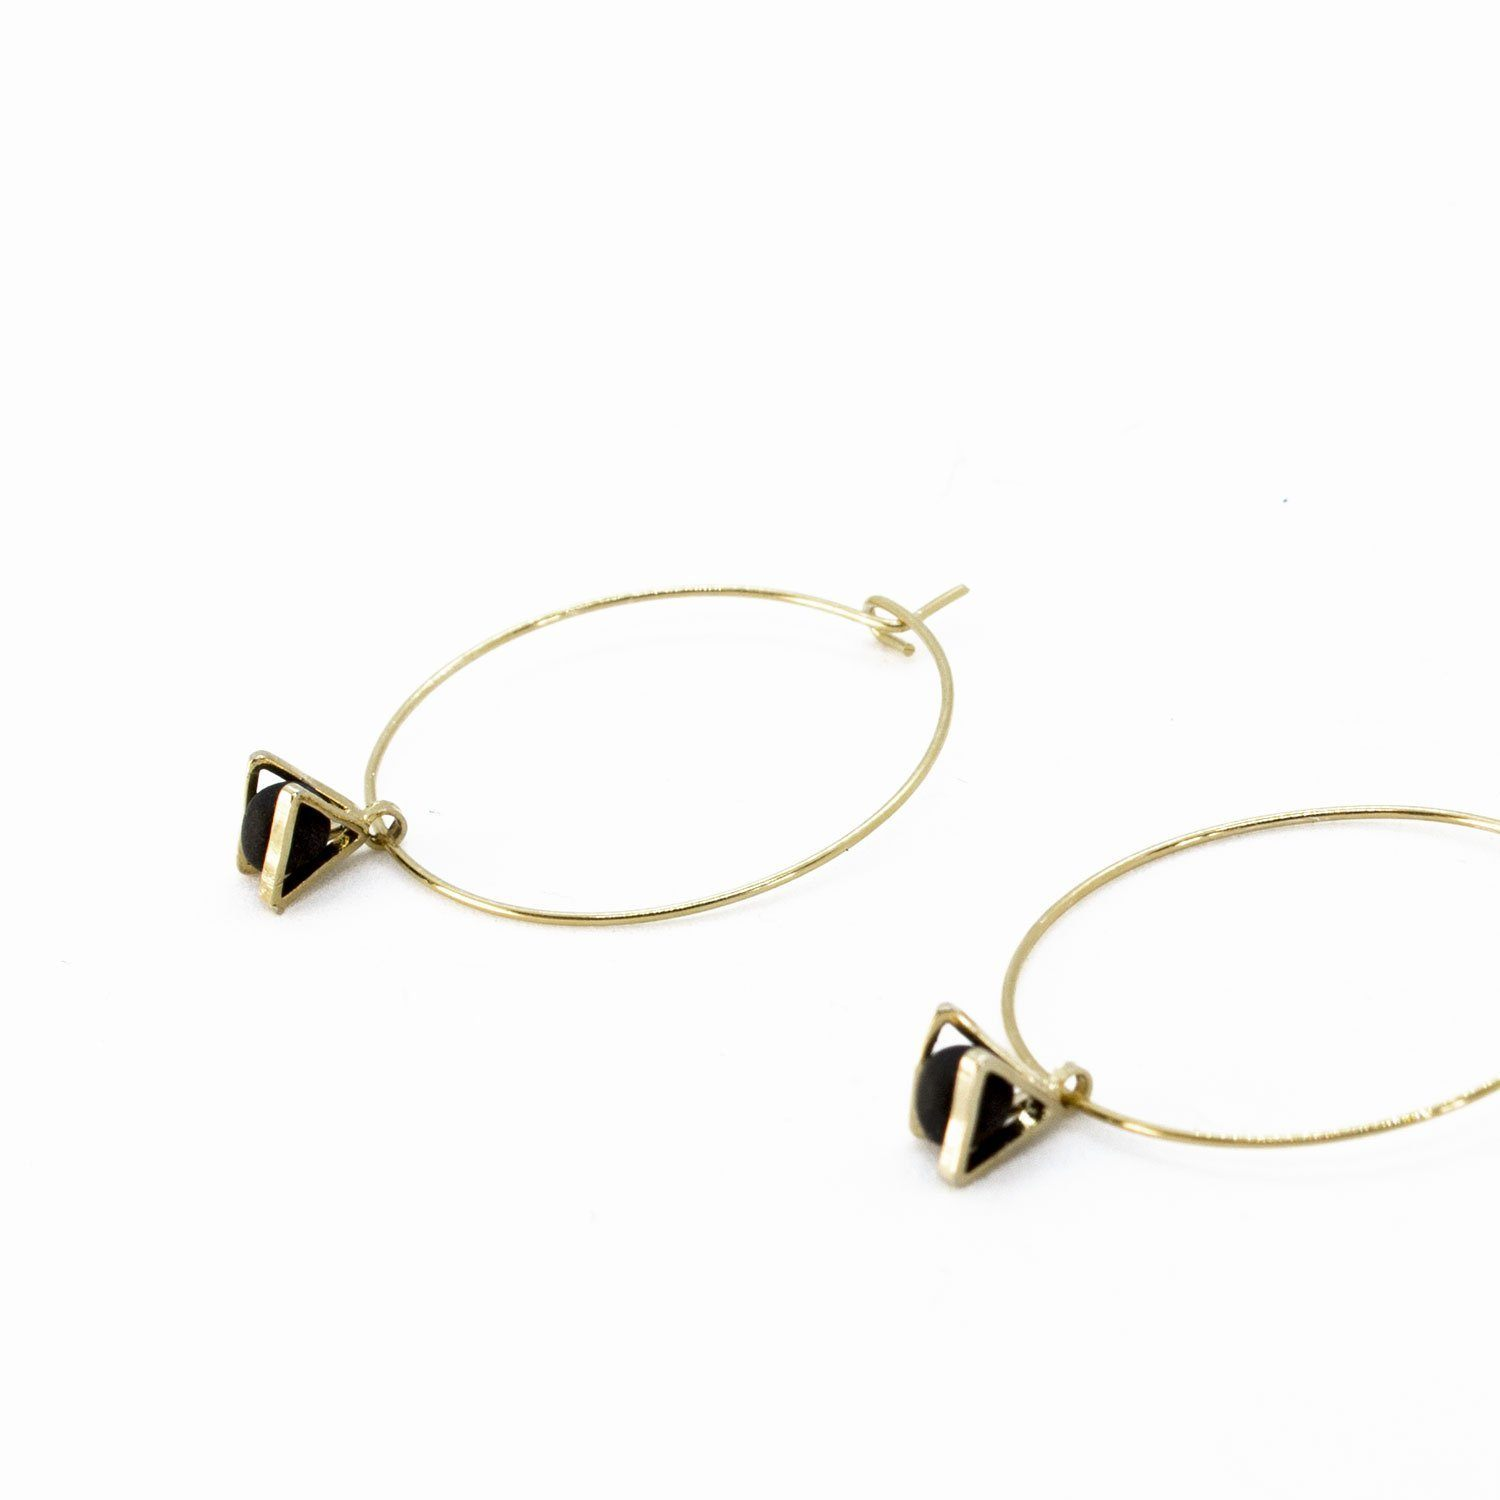 Gold Hoop Earrings - Tiny Triangle Charm - Earrings - 5mm Paper - Naiise